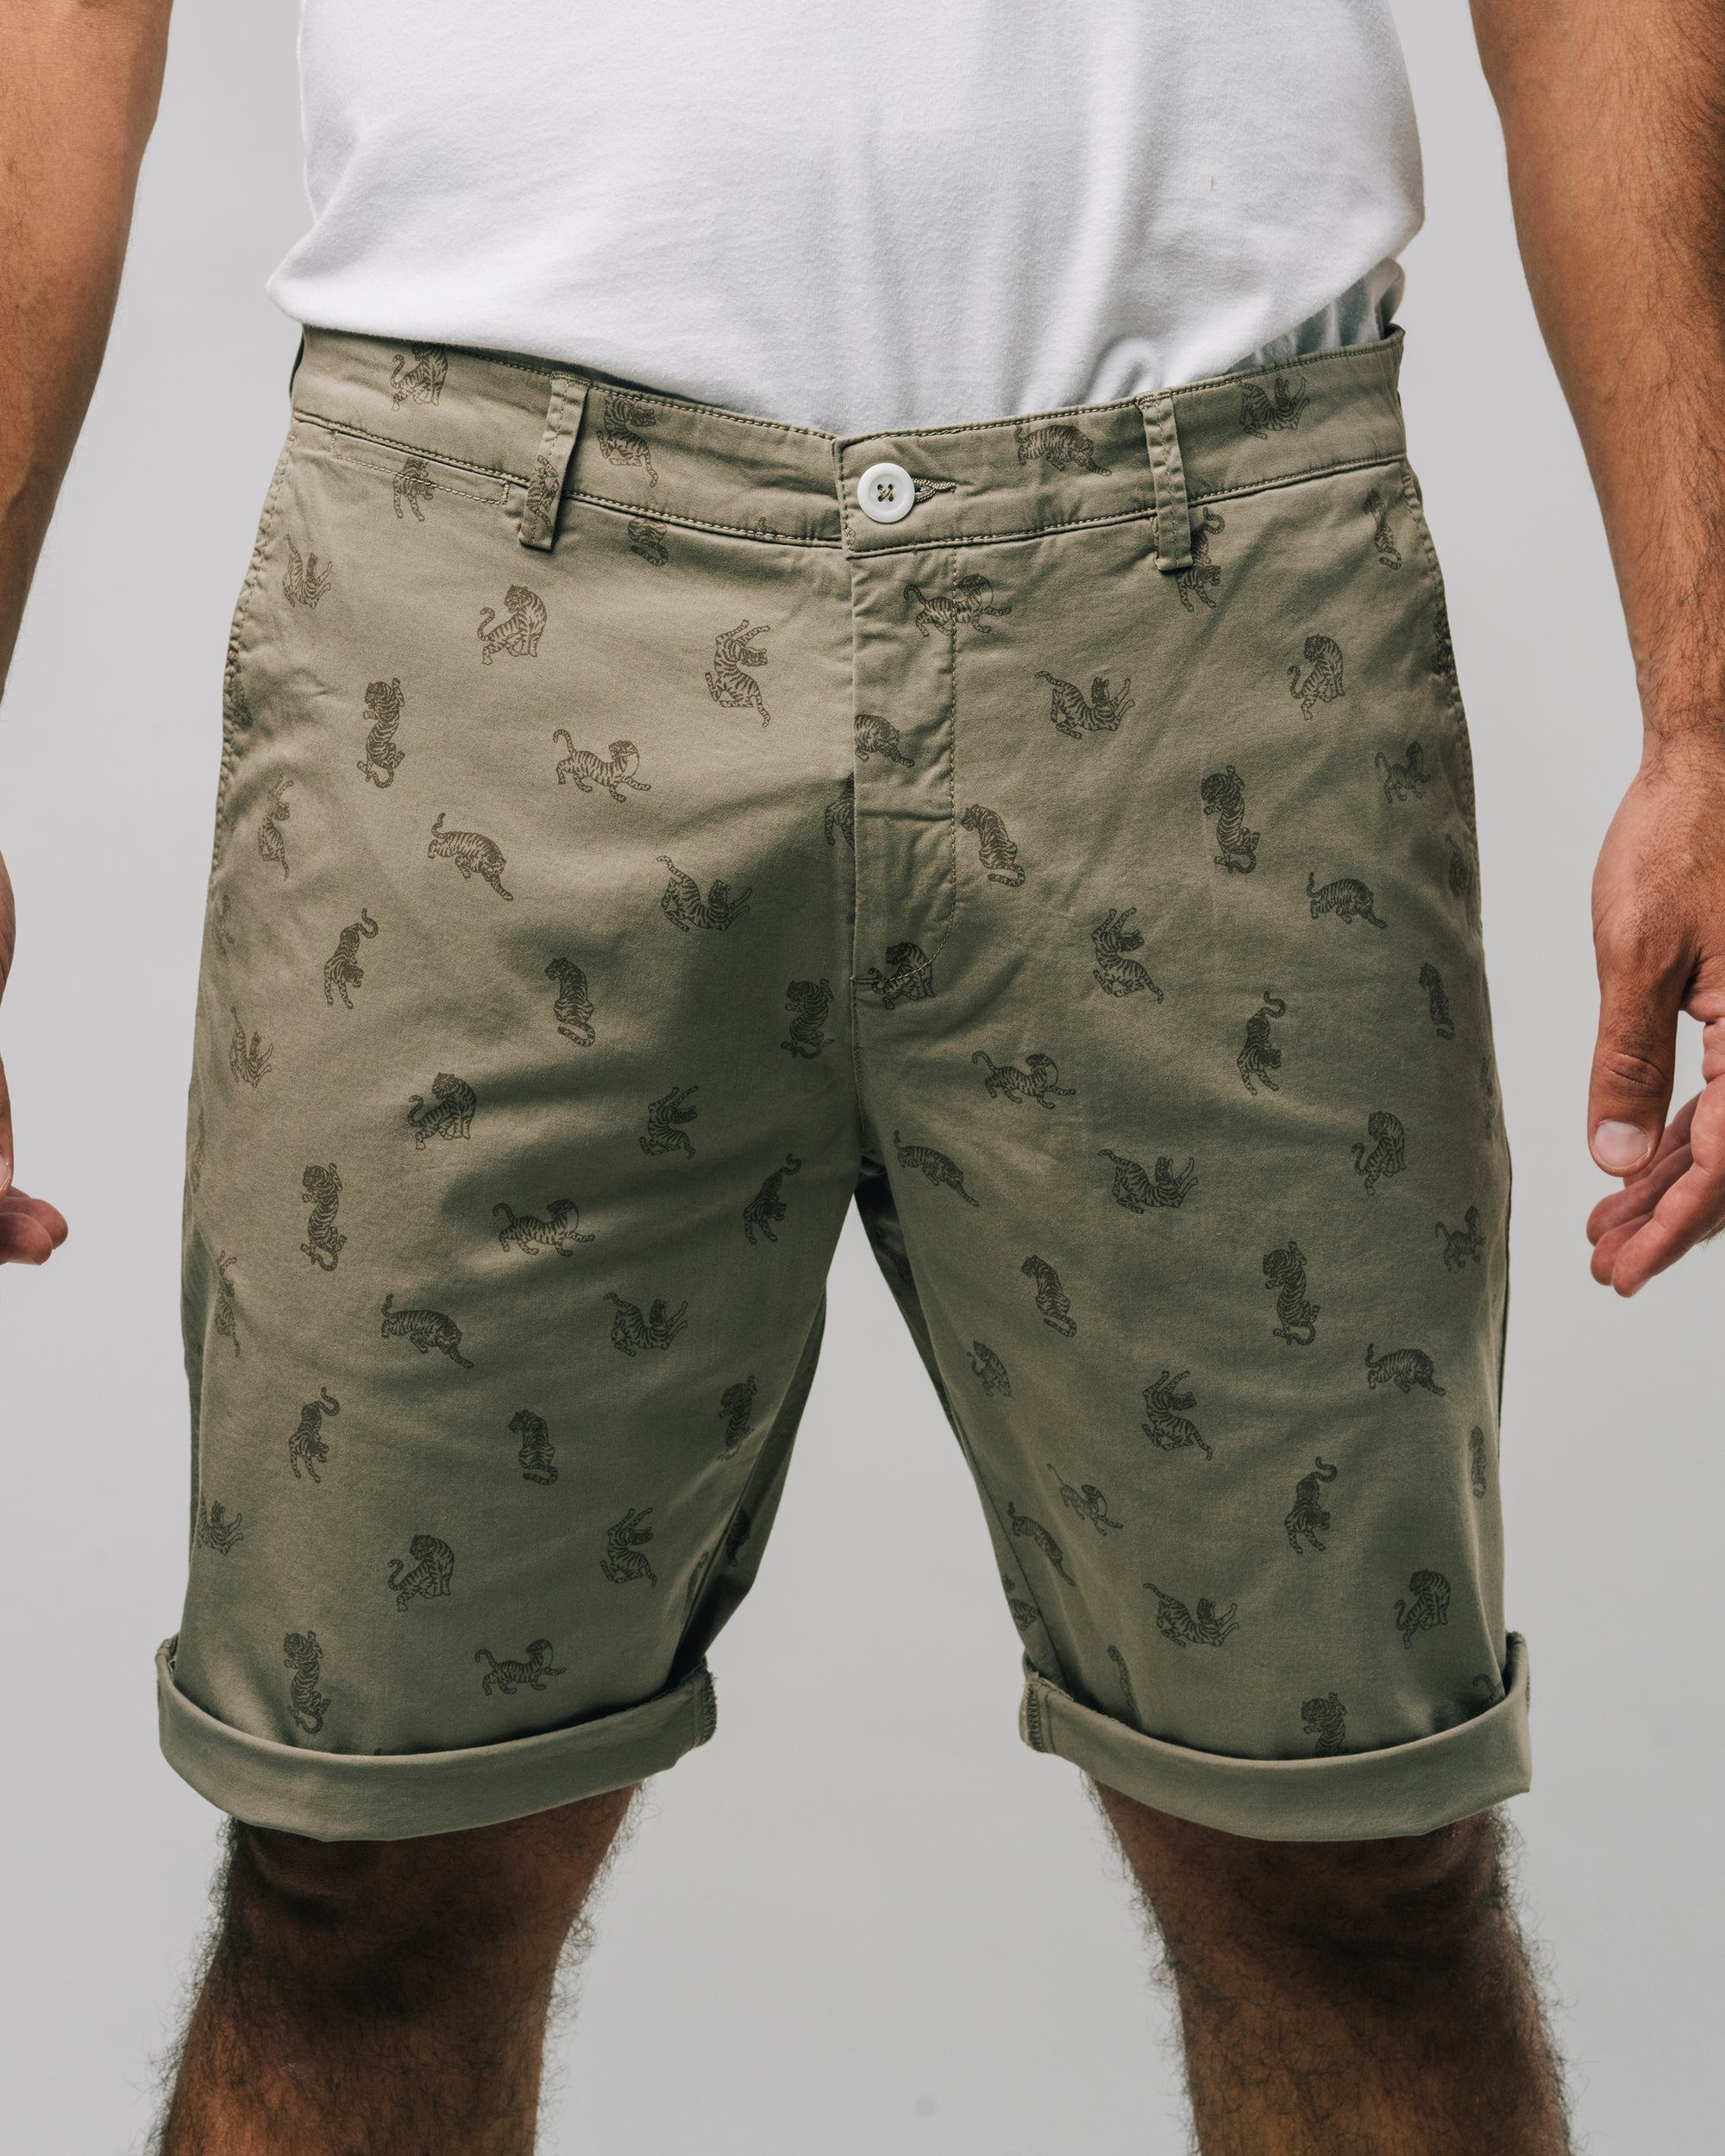 Shop sustainable and fairtrade apparel online. Model Short pants Roar Roar. Official Brava Fabrics store, worldwide express shipping.